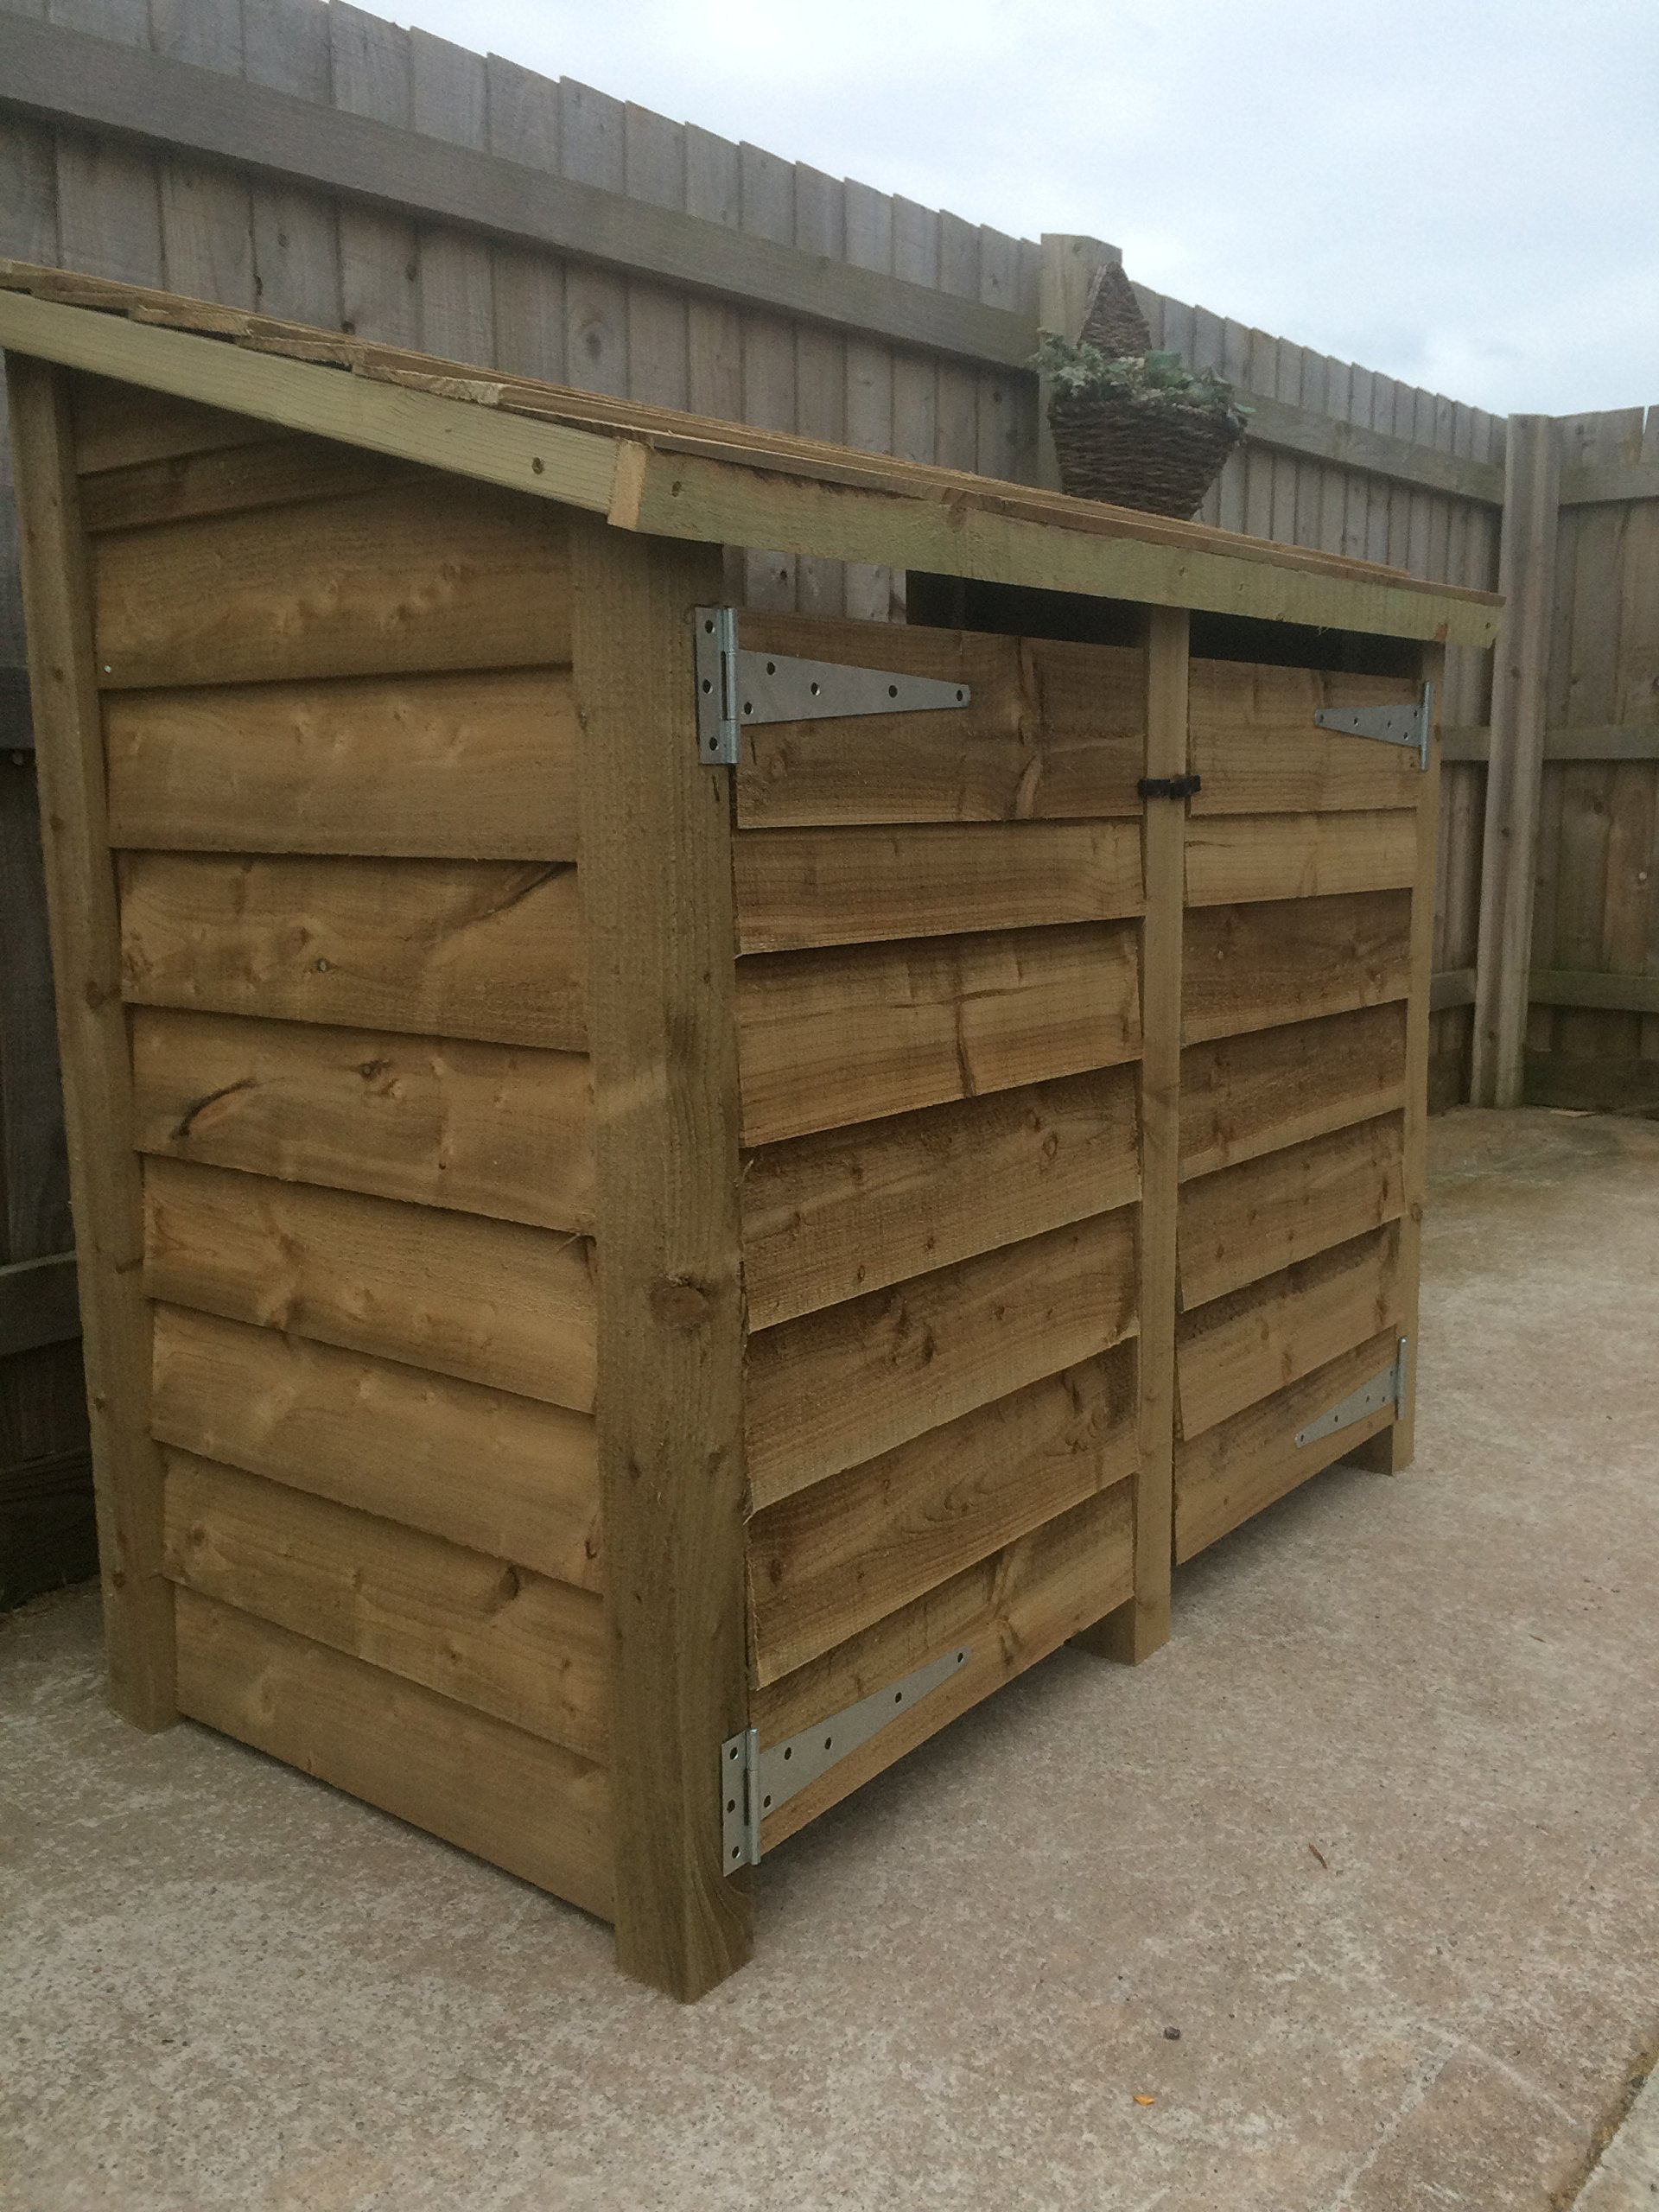 GIDLEIGH 4ft TALL WOODEN LOG STORE/GARDEN STORAGE WITH DOORS, HEAVY DUTY, HAND MADE, PRESSURE TREATED,WITH DOORS